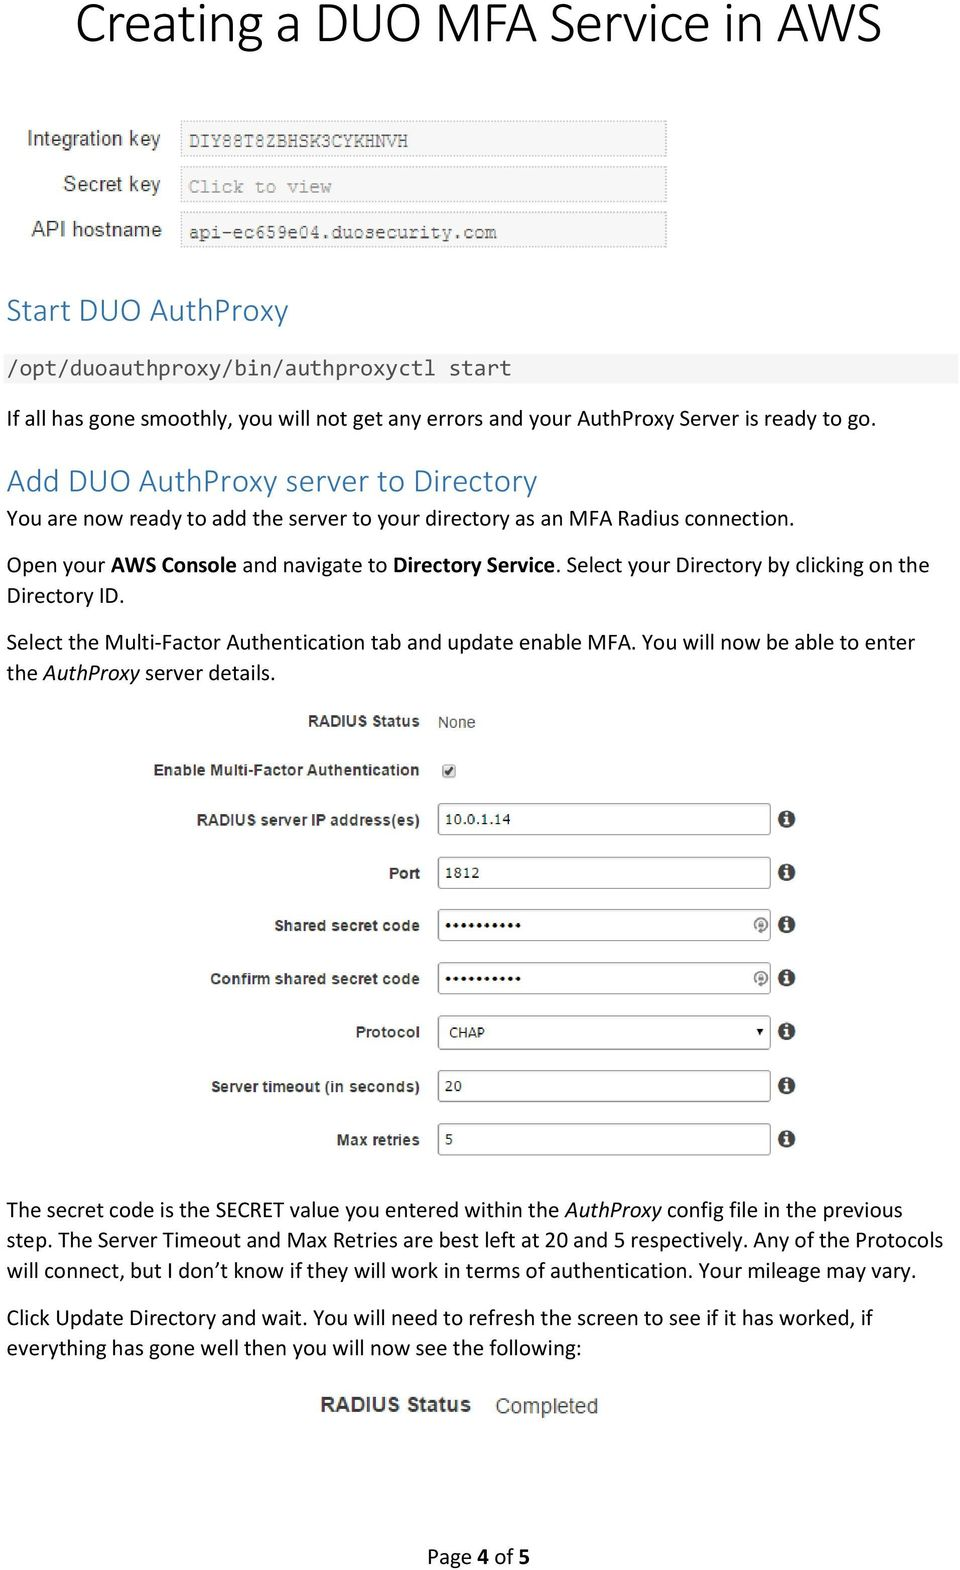 Creating a DUO MFA Service in AWS - PDF